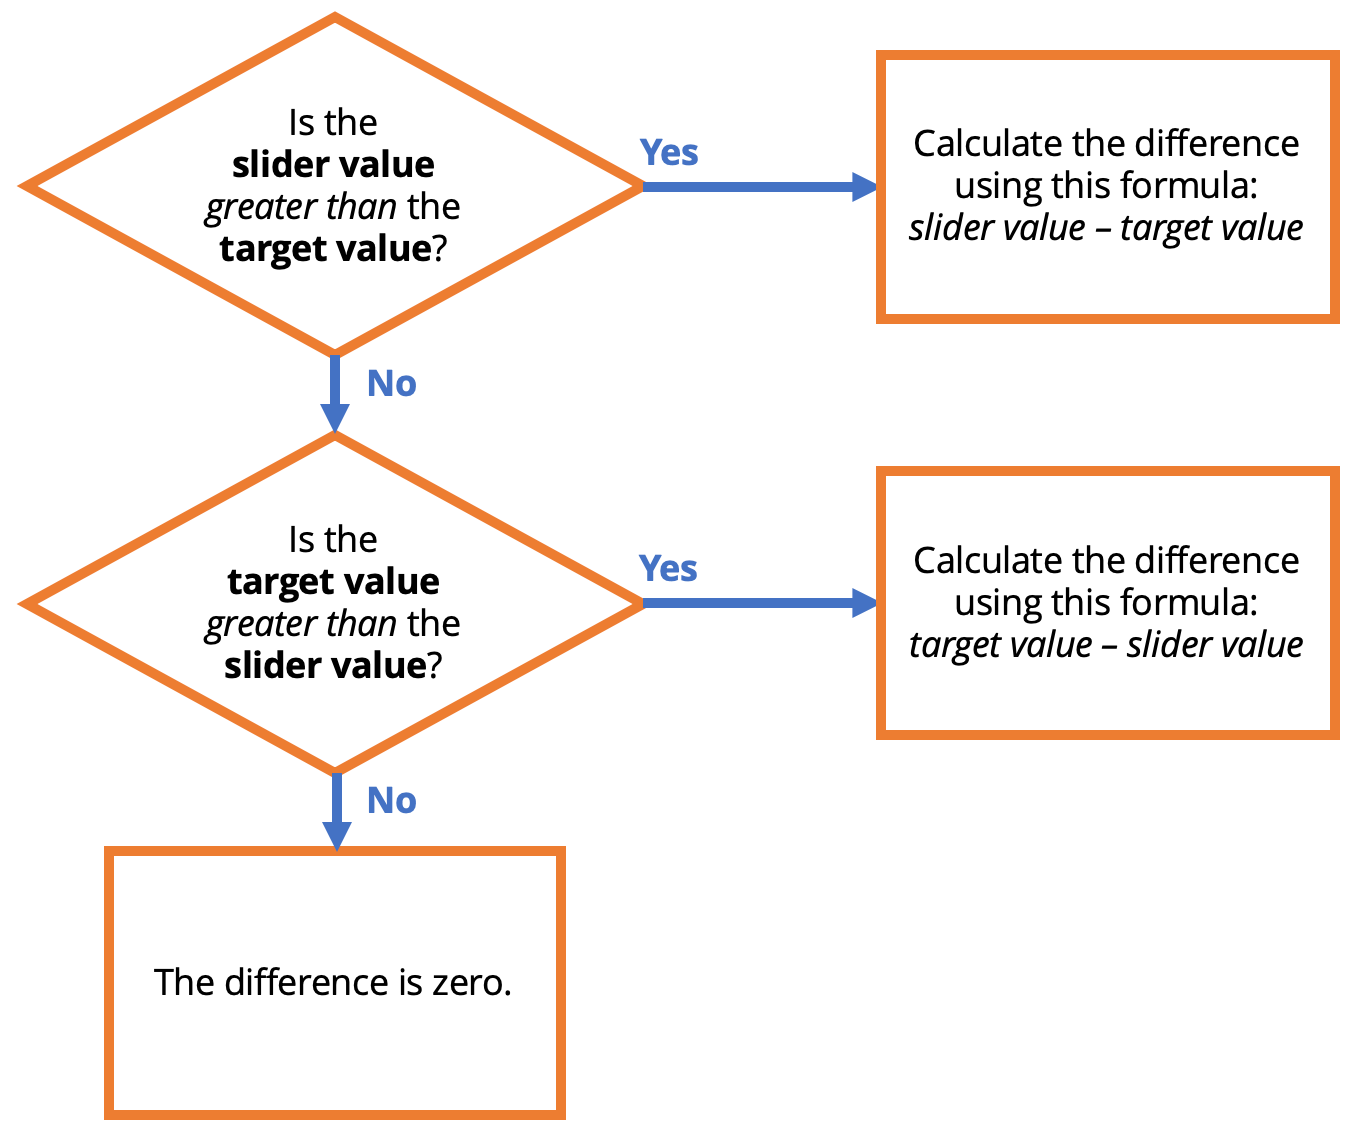 Calculating the difference, in flowchart form